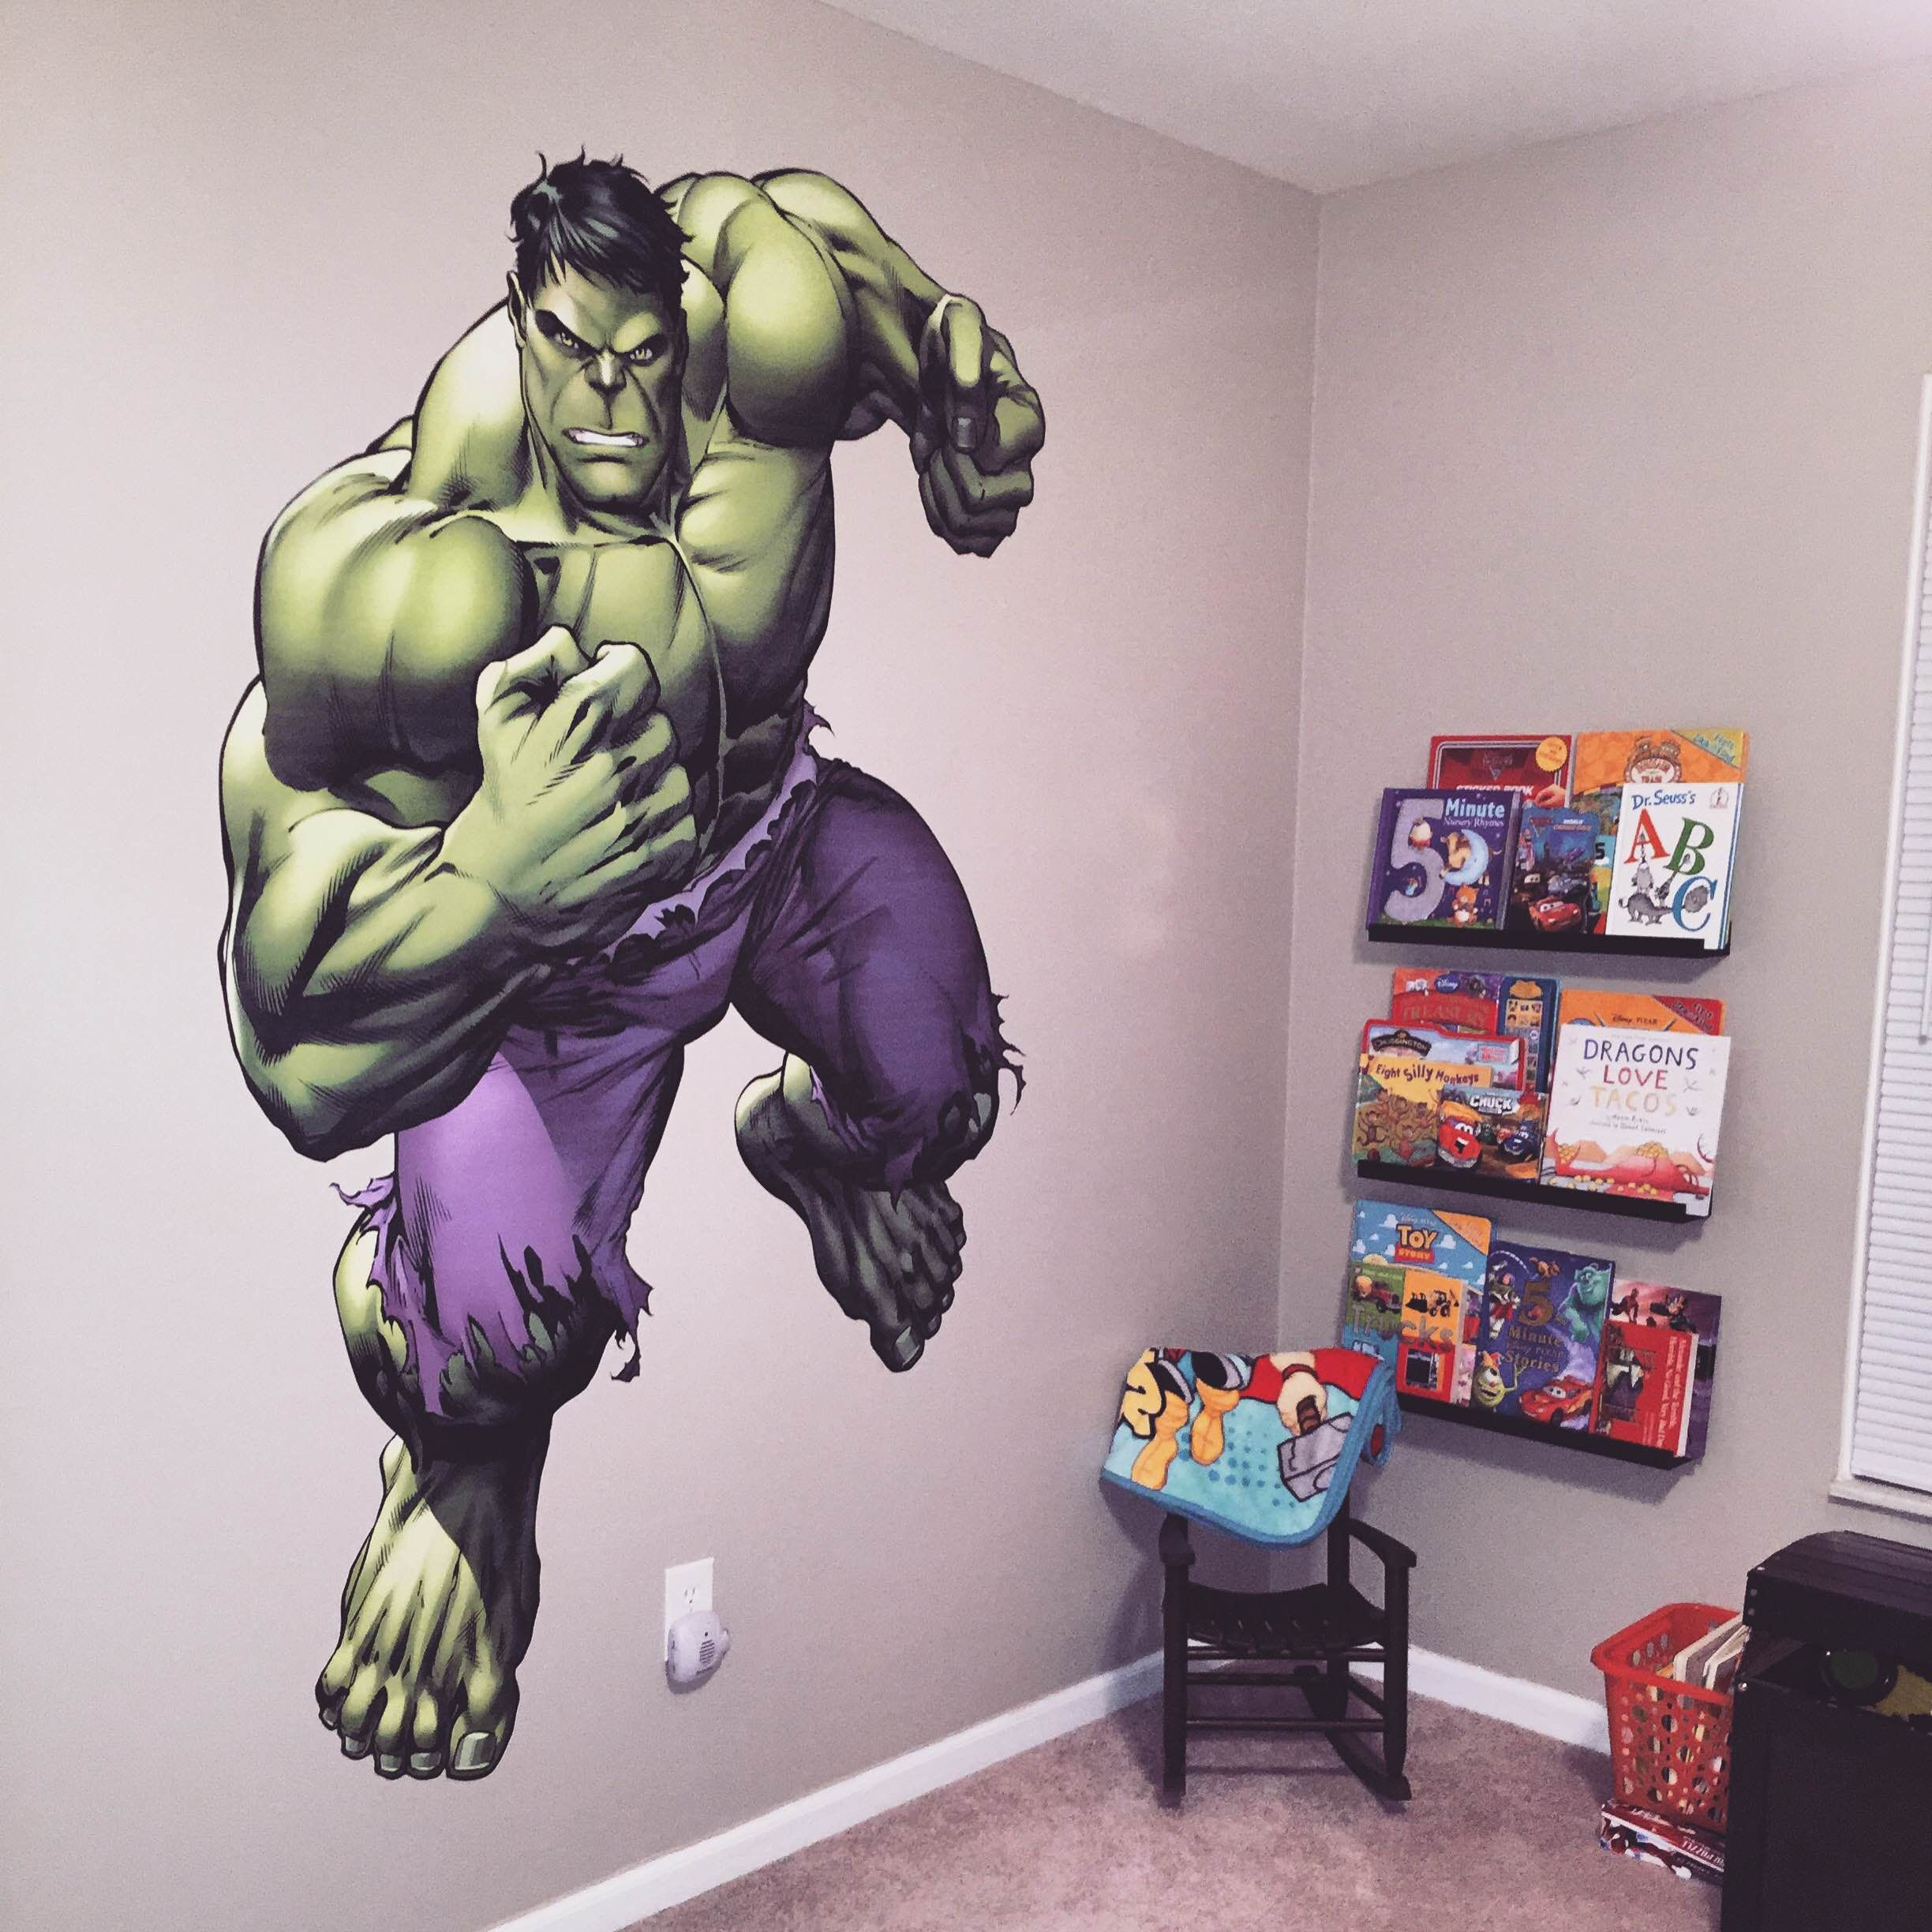 Boys Bedding: 28 Superheroes Inspired Sheets For Those Who Are ...